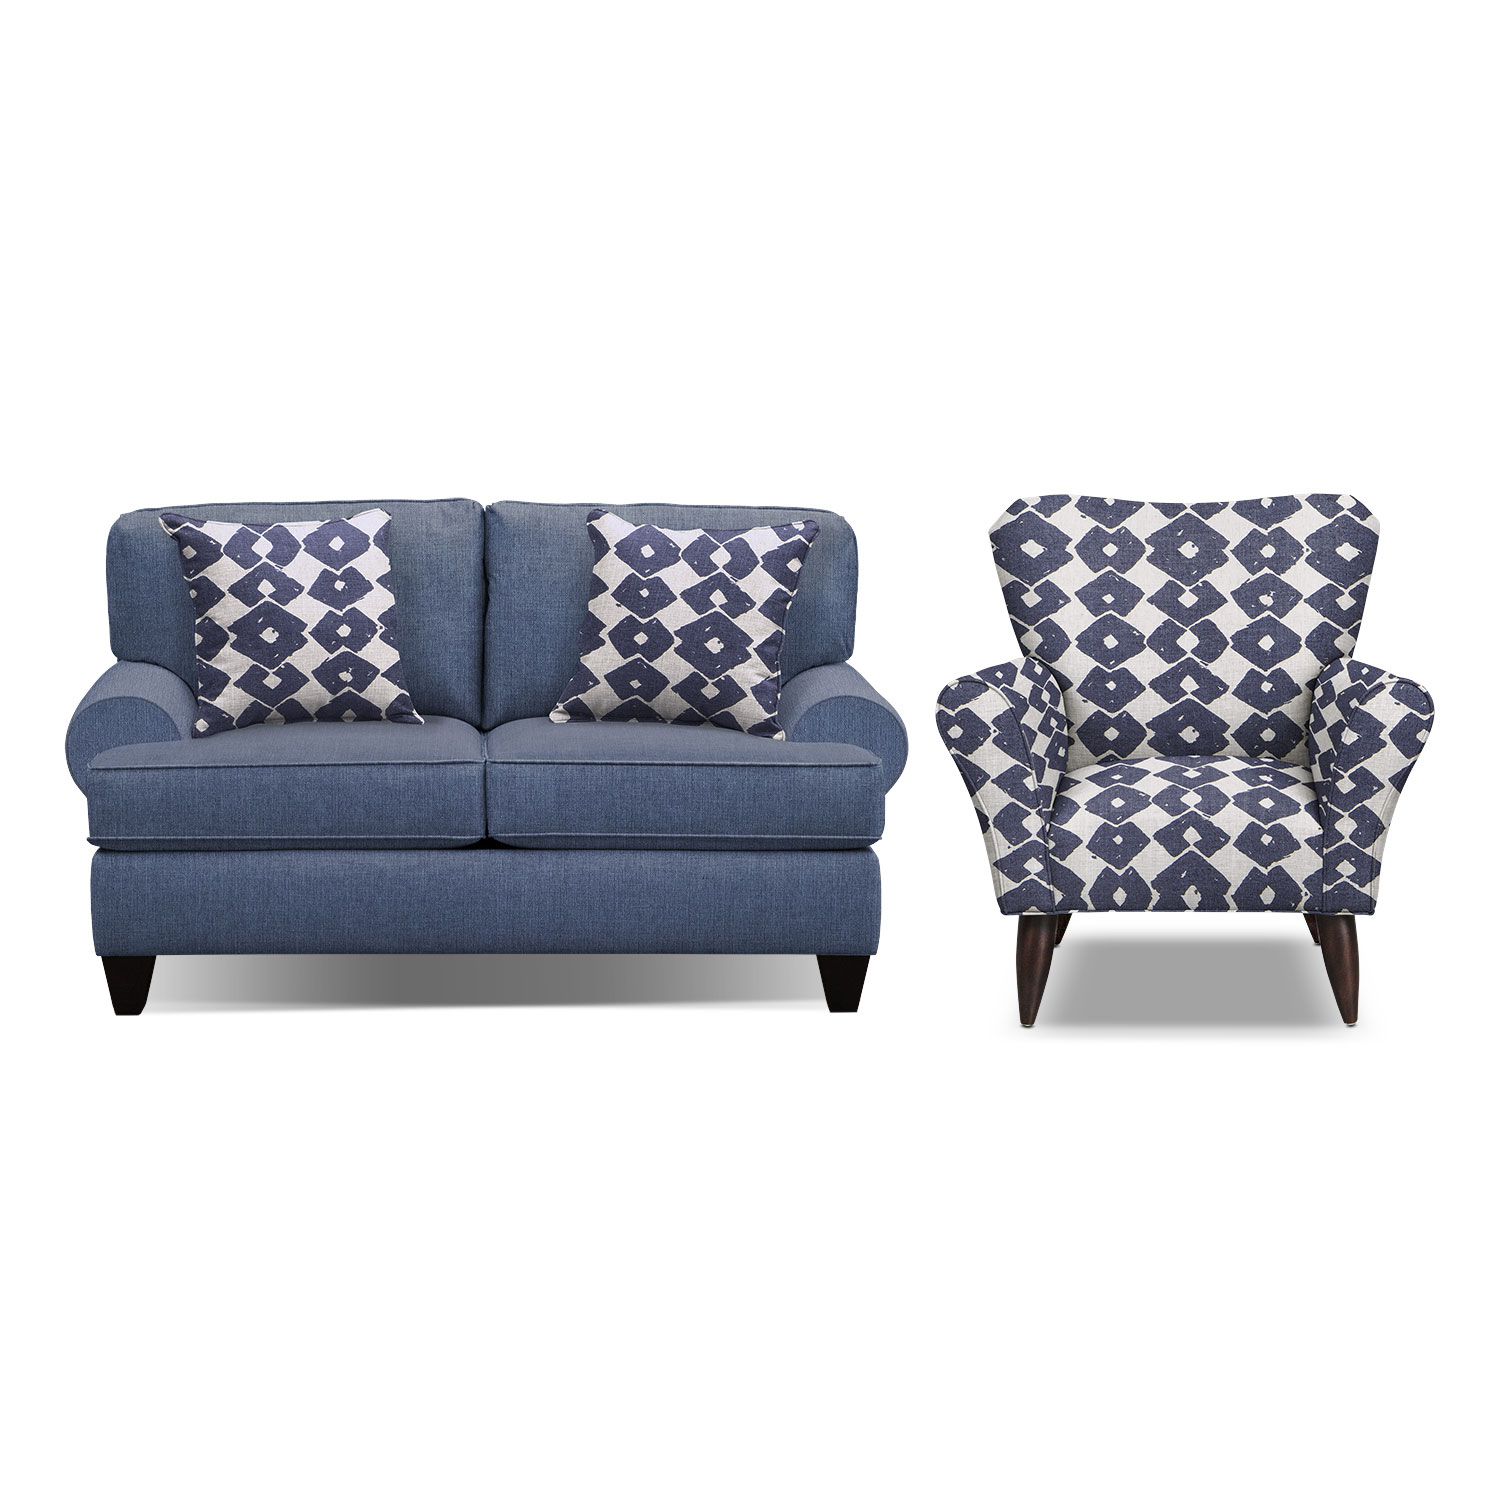 "Living Room Furniture - Bailey Blue 67"" Innerspring Sleeper Sofa and Accent Chair Set"